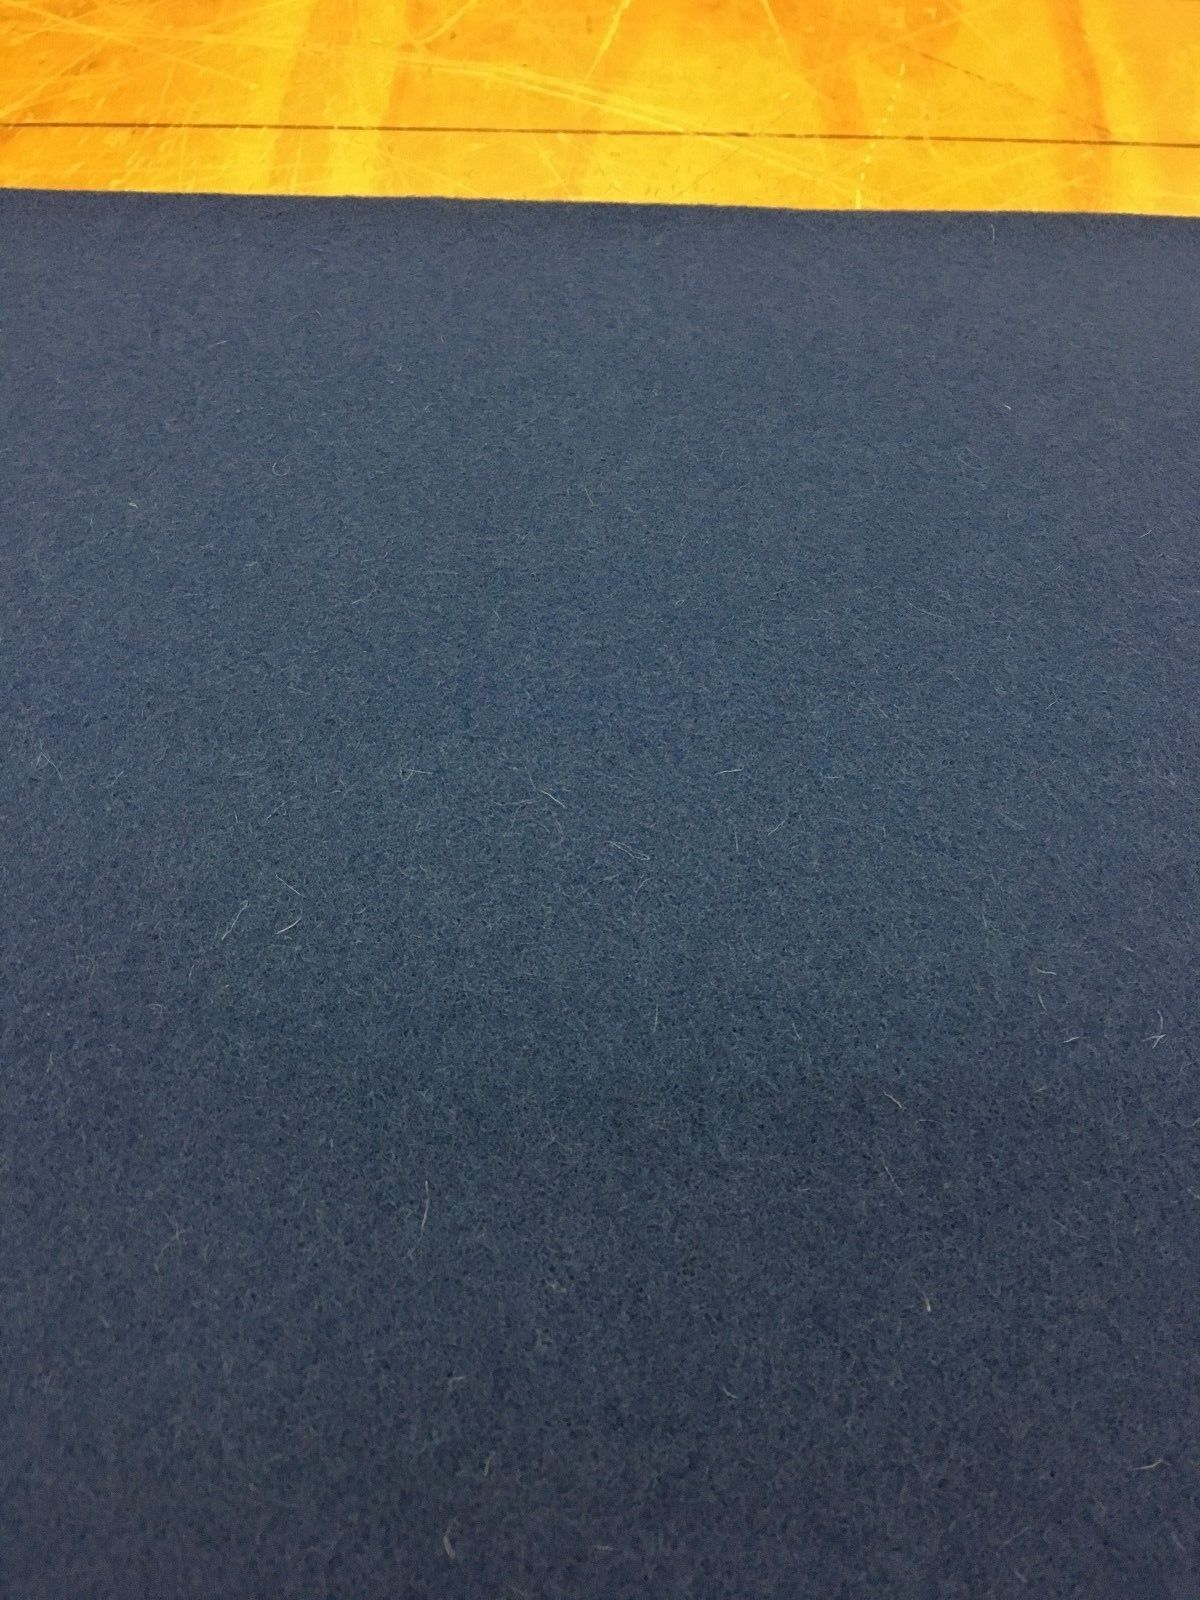 7.5 yds Mid Century Upholstery Fabric Navy Blue Wool AG